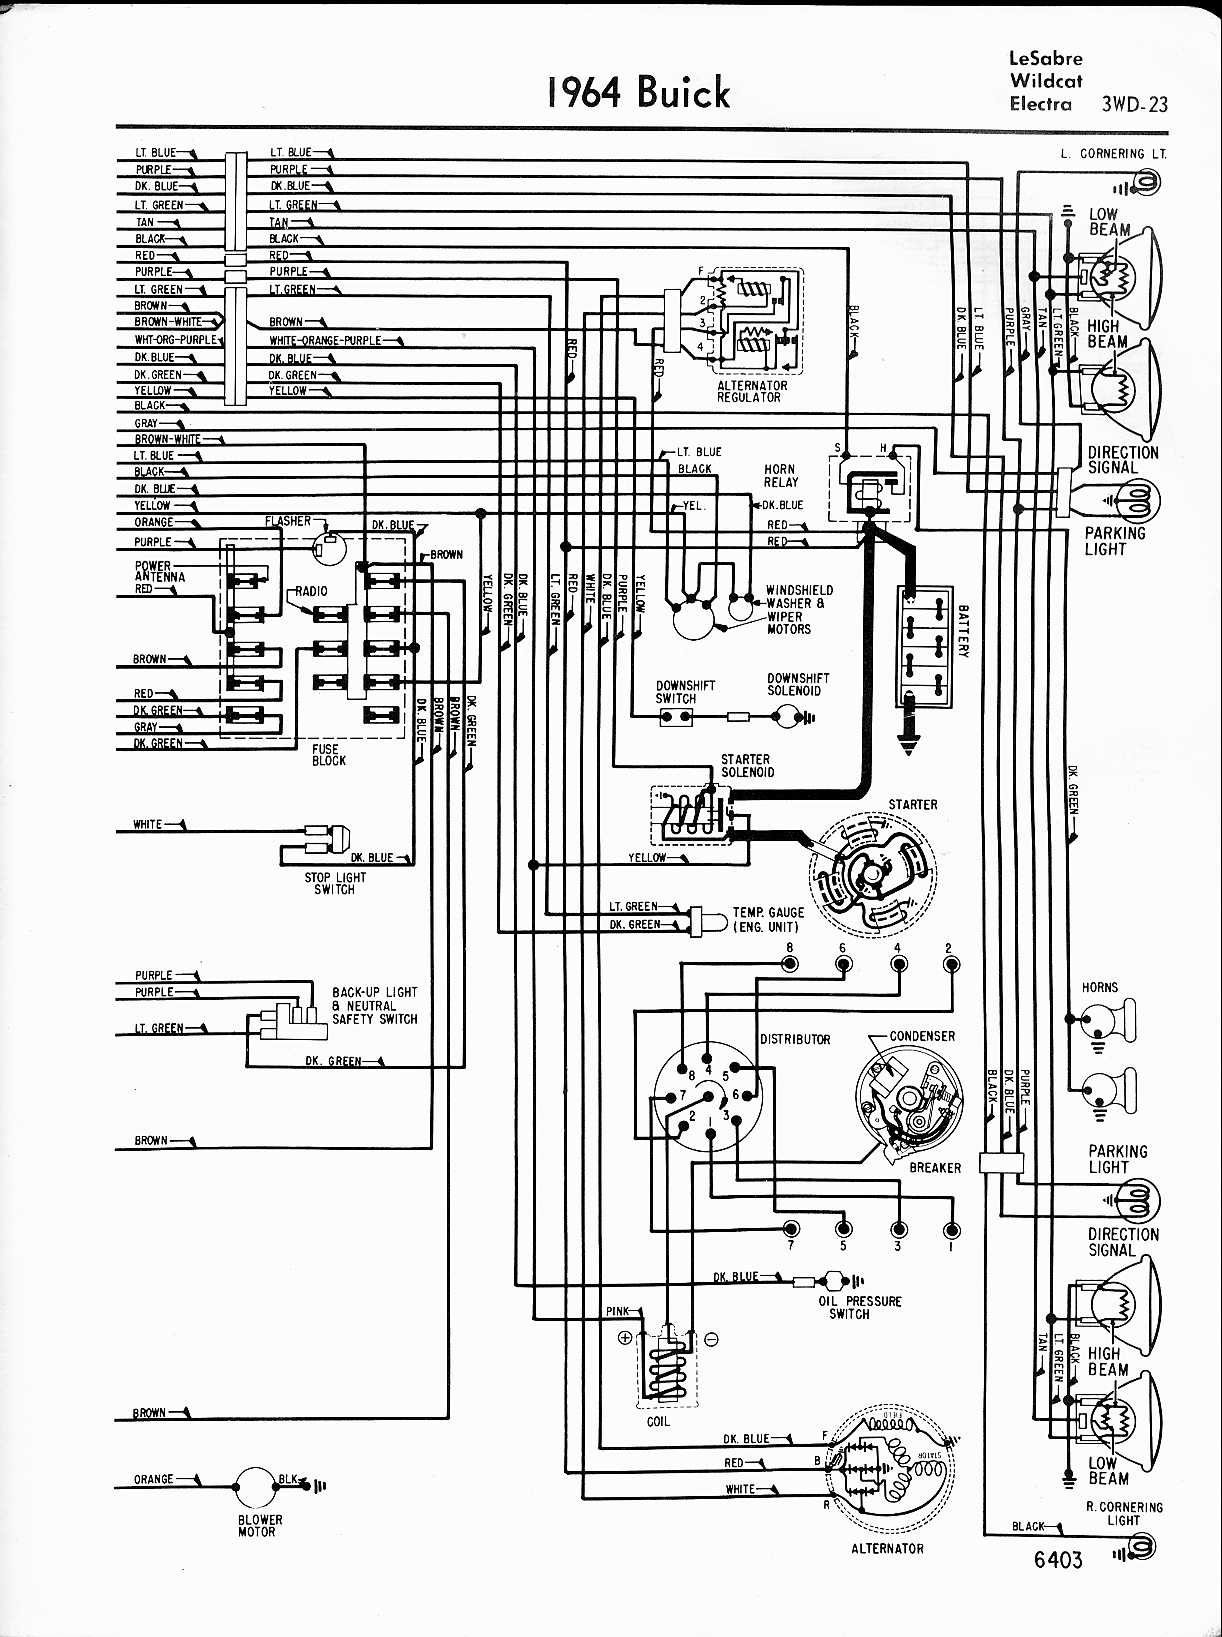 1994 Buick Regal Wiring Diagram Simple Guide About Need Help On Wiringwiringdiagramjpg Diagrams 1957 1965